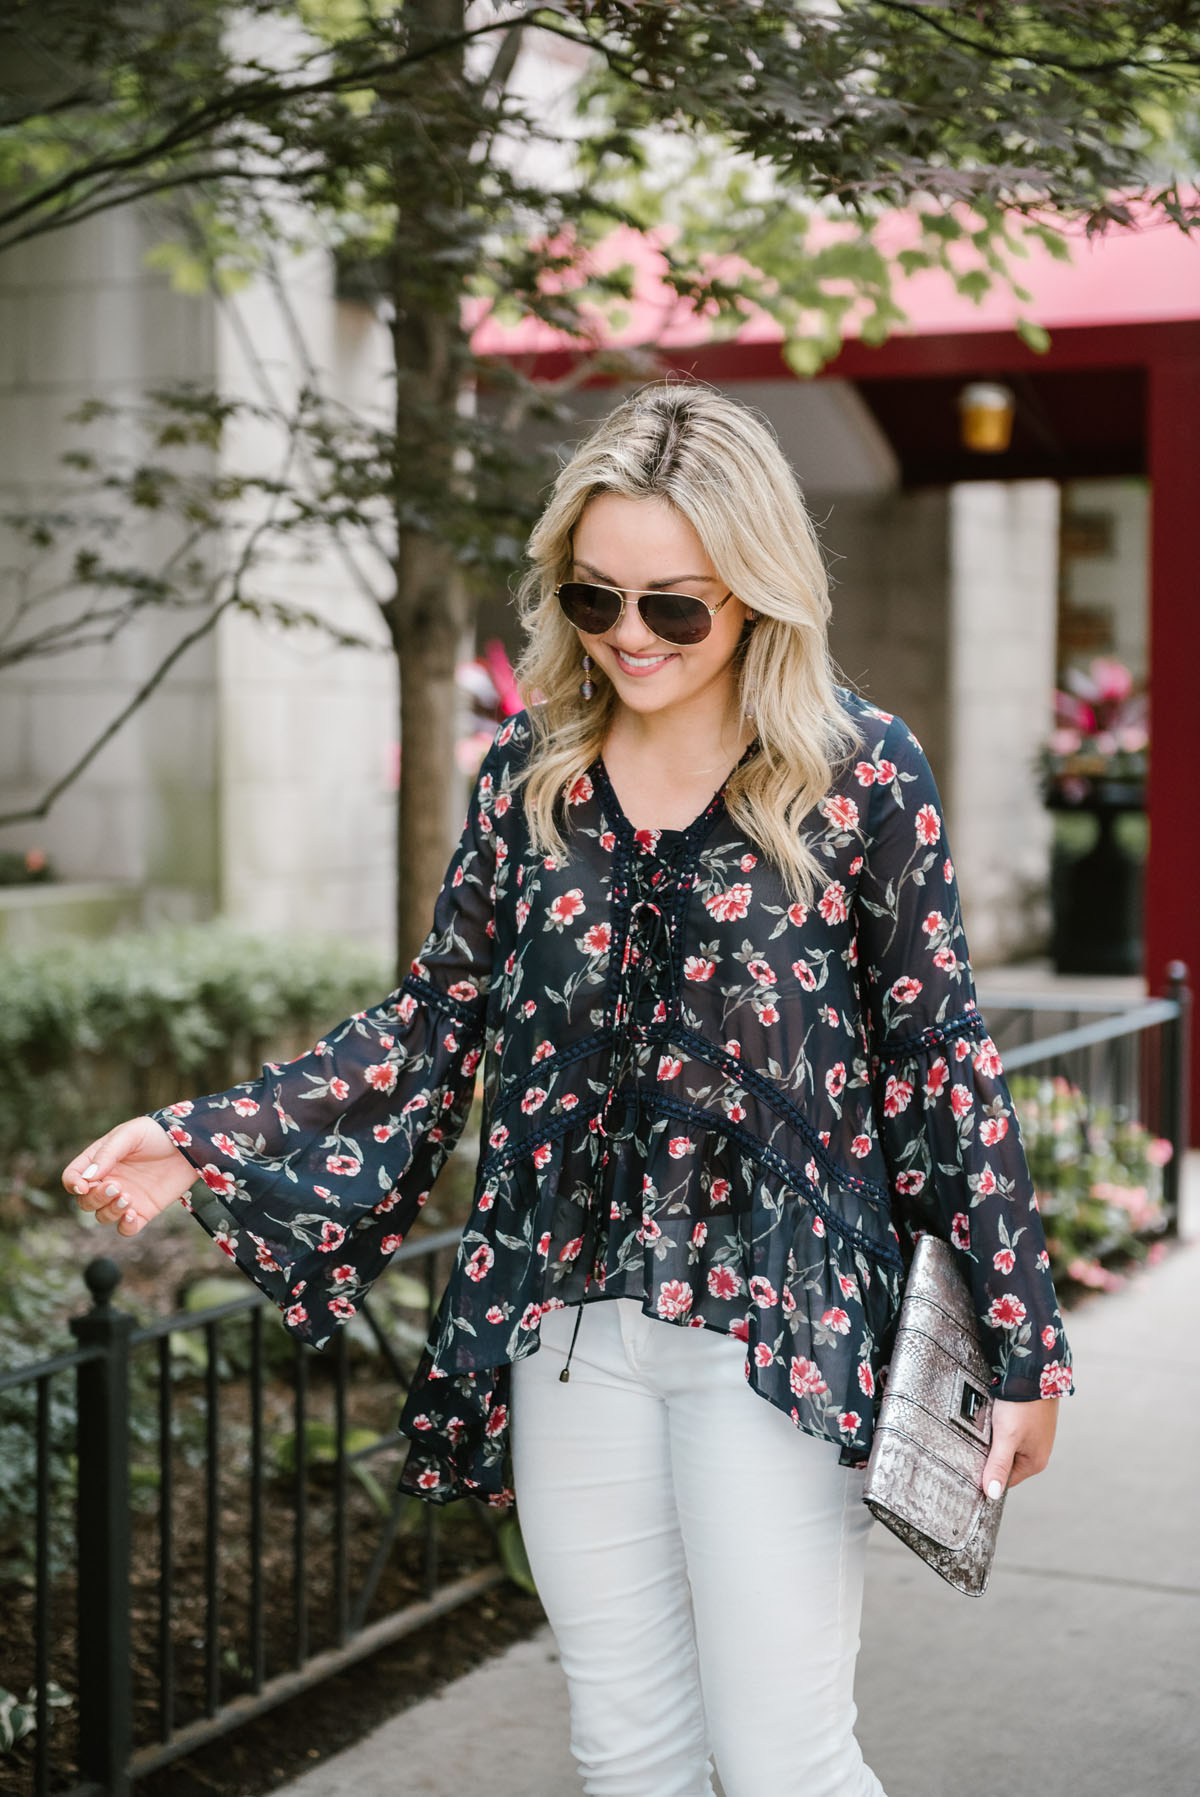 Bows & Sequins wearing a Moon River flare sleeve floral blouse with a metallic silver clutch and Gucci aviators.